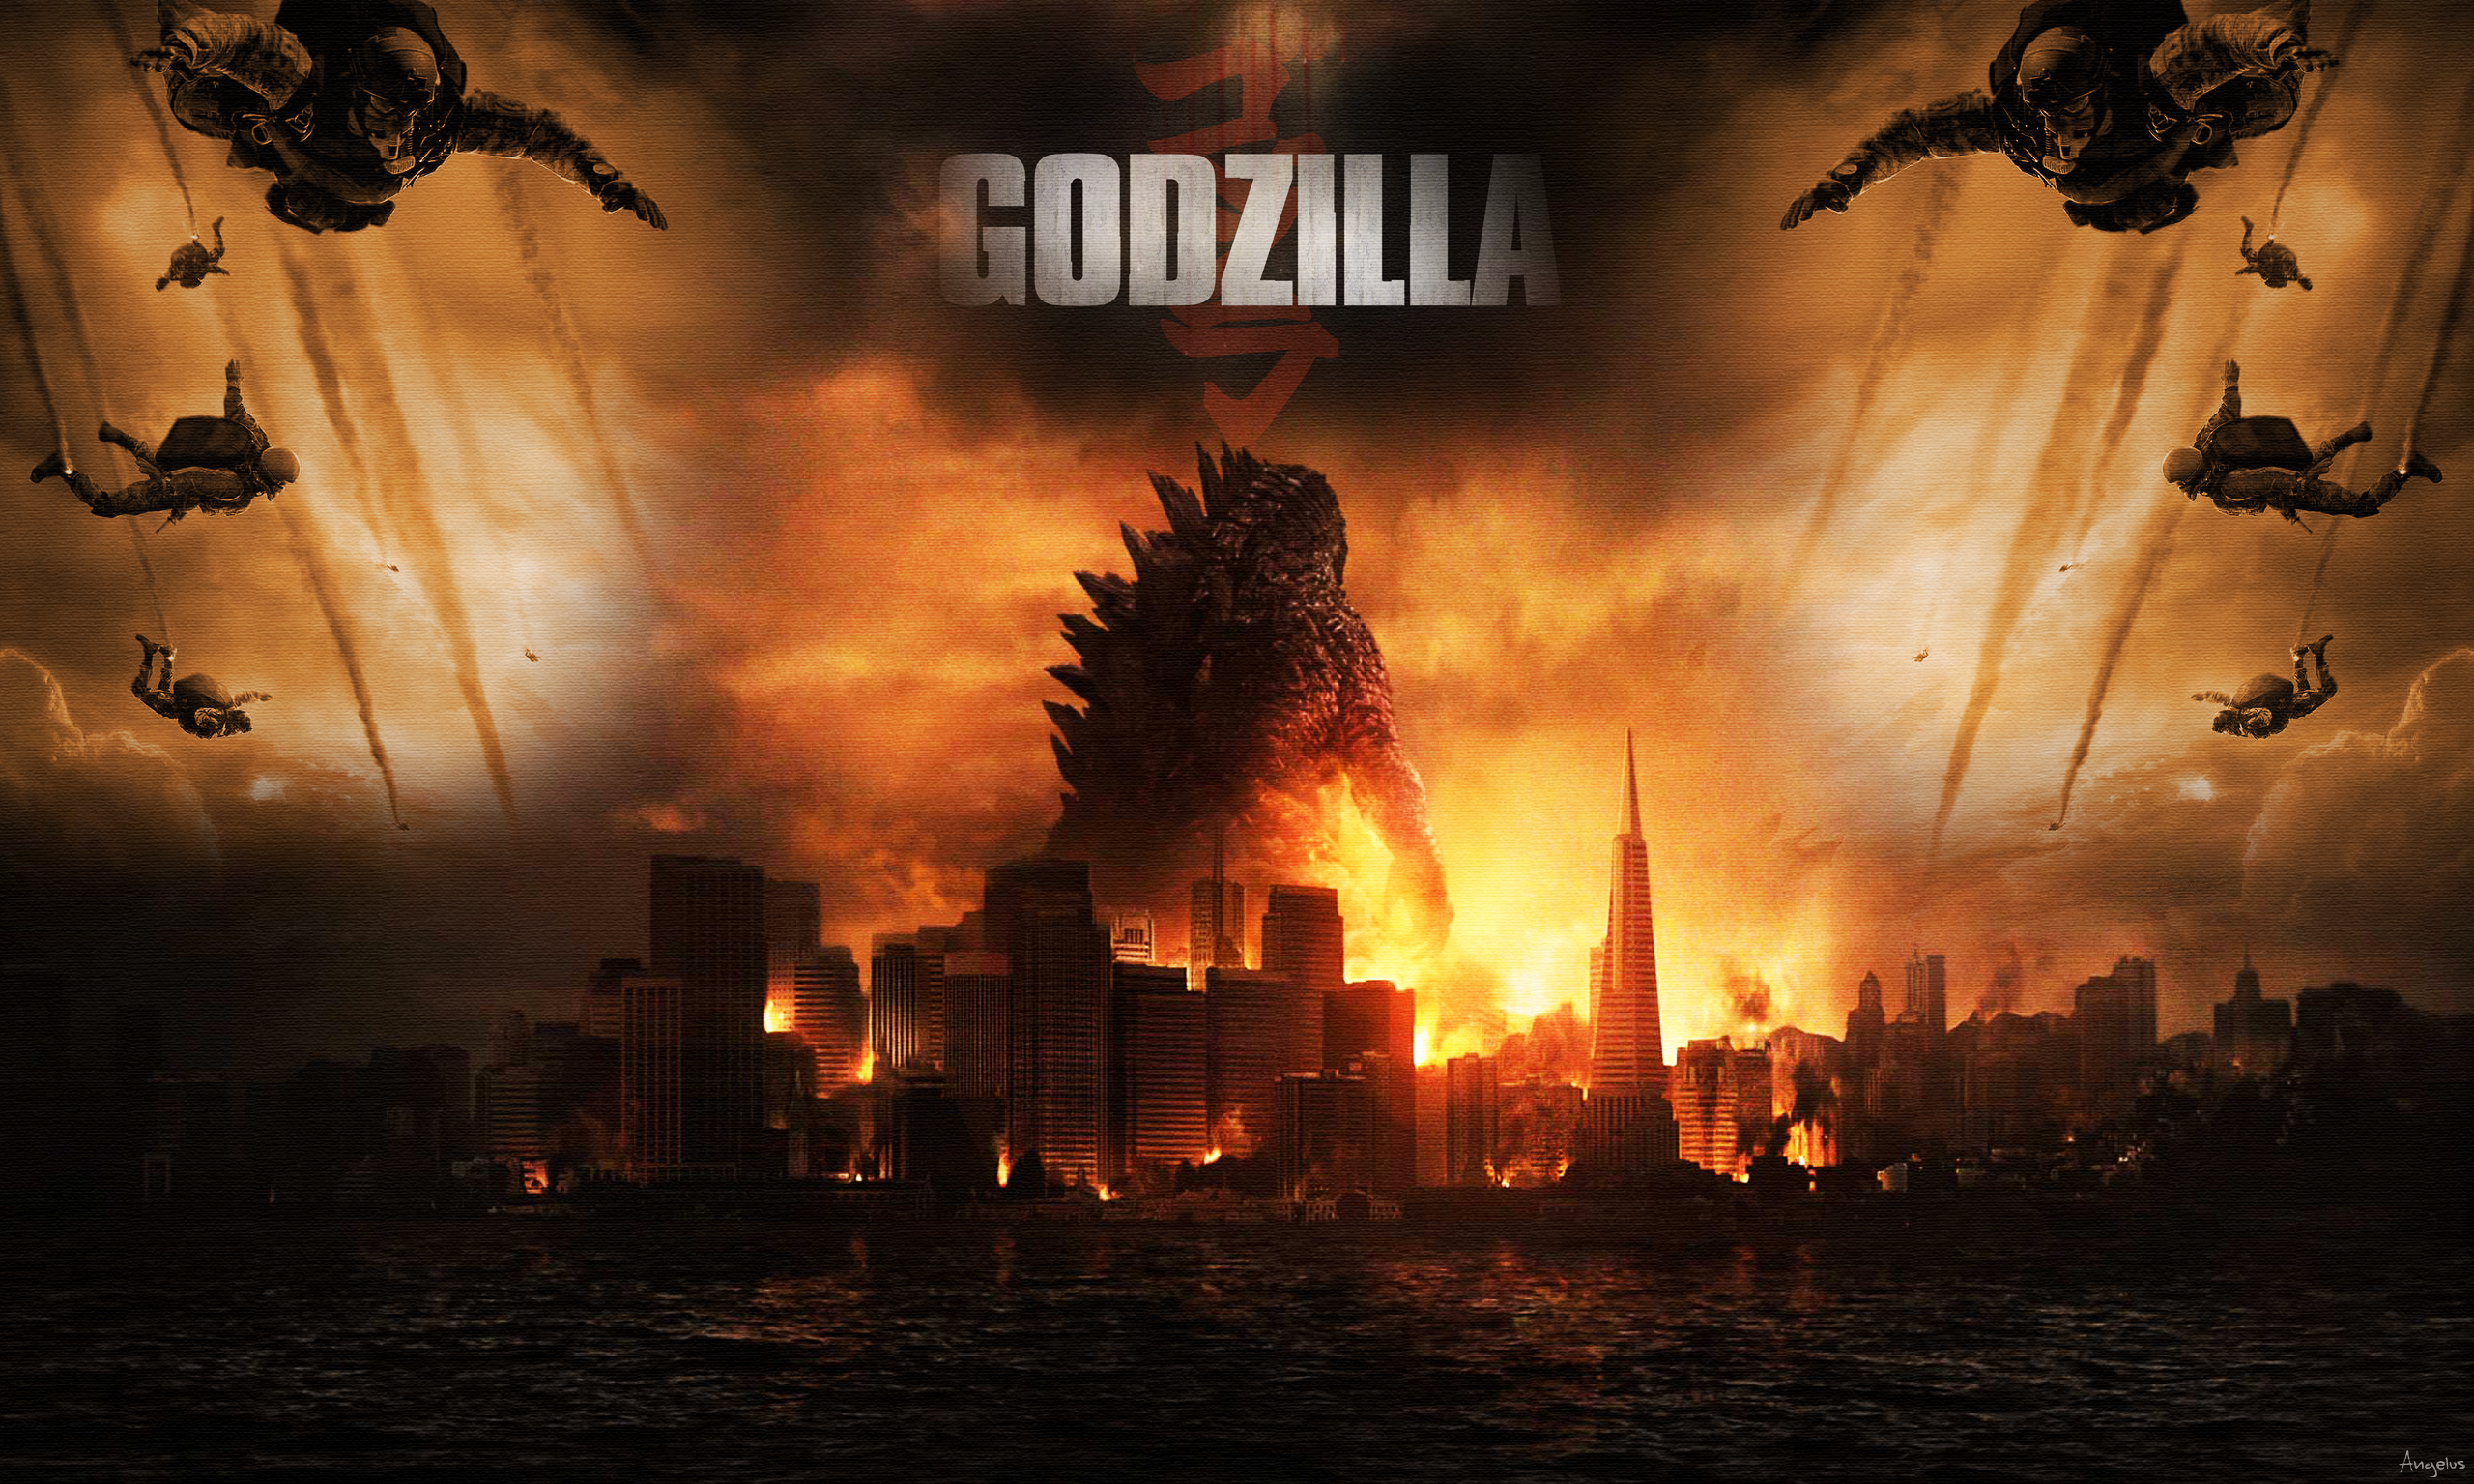 Godzilla 2014 Wallpaper 2 by Angelus23 2560x1536